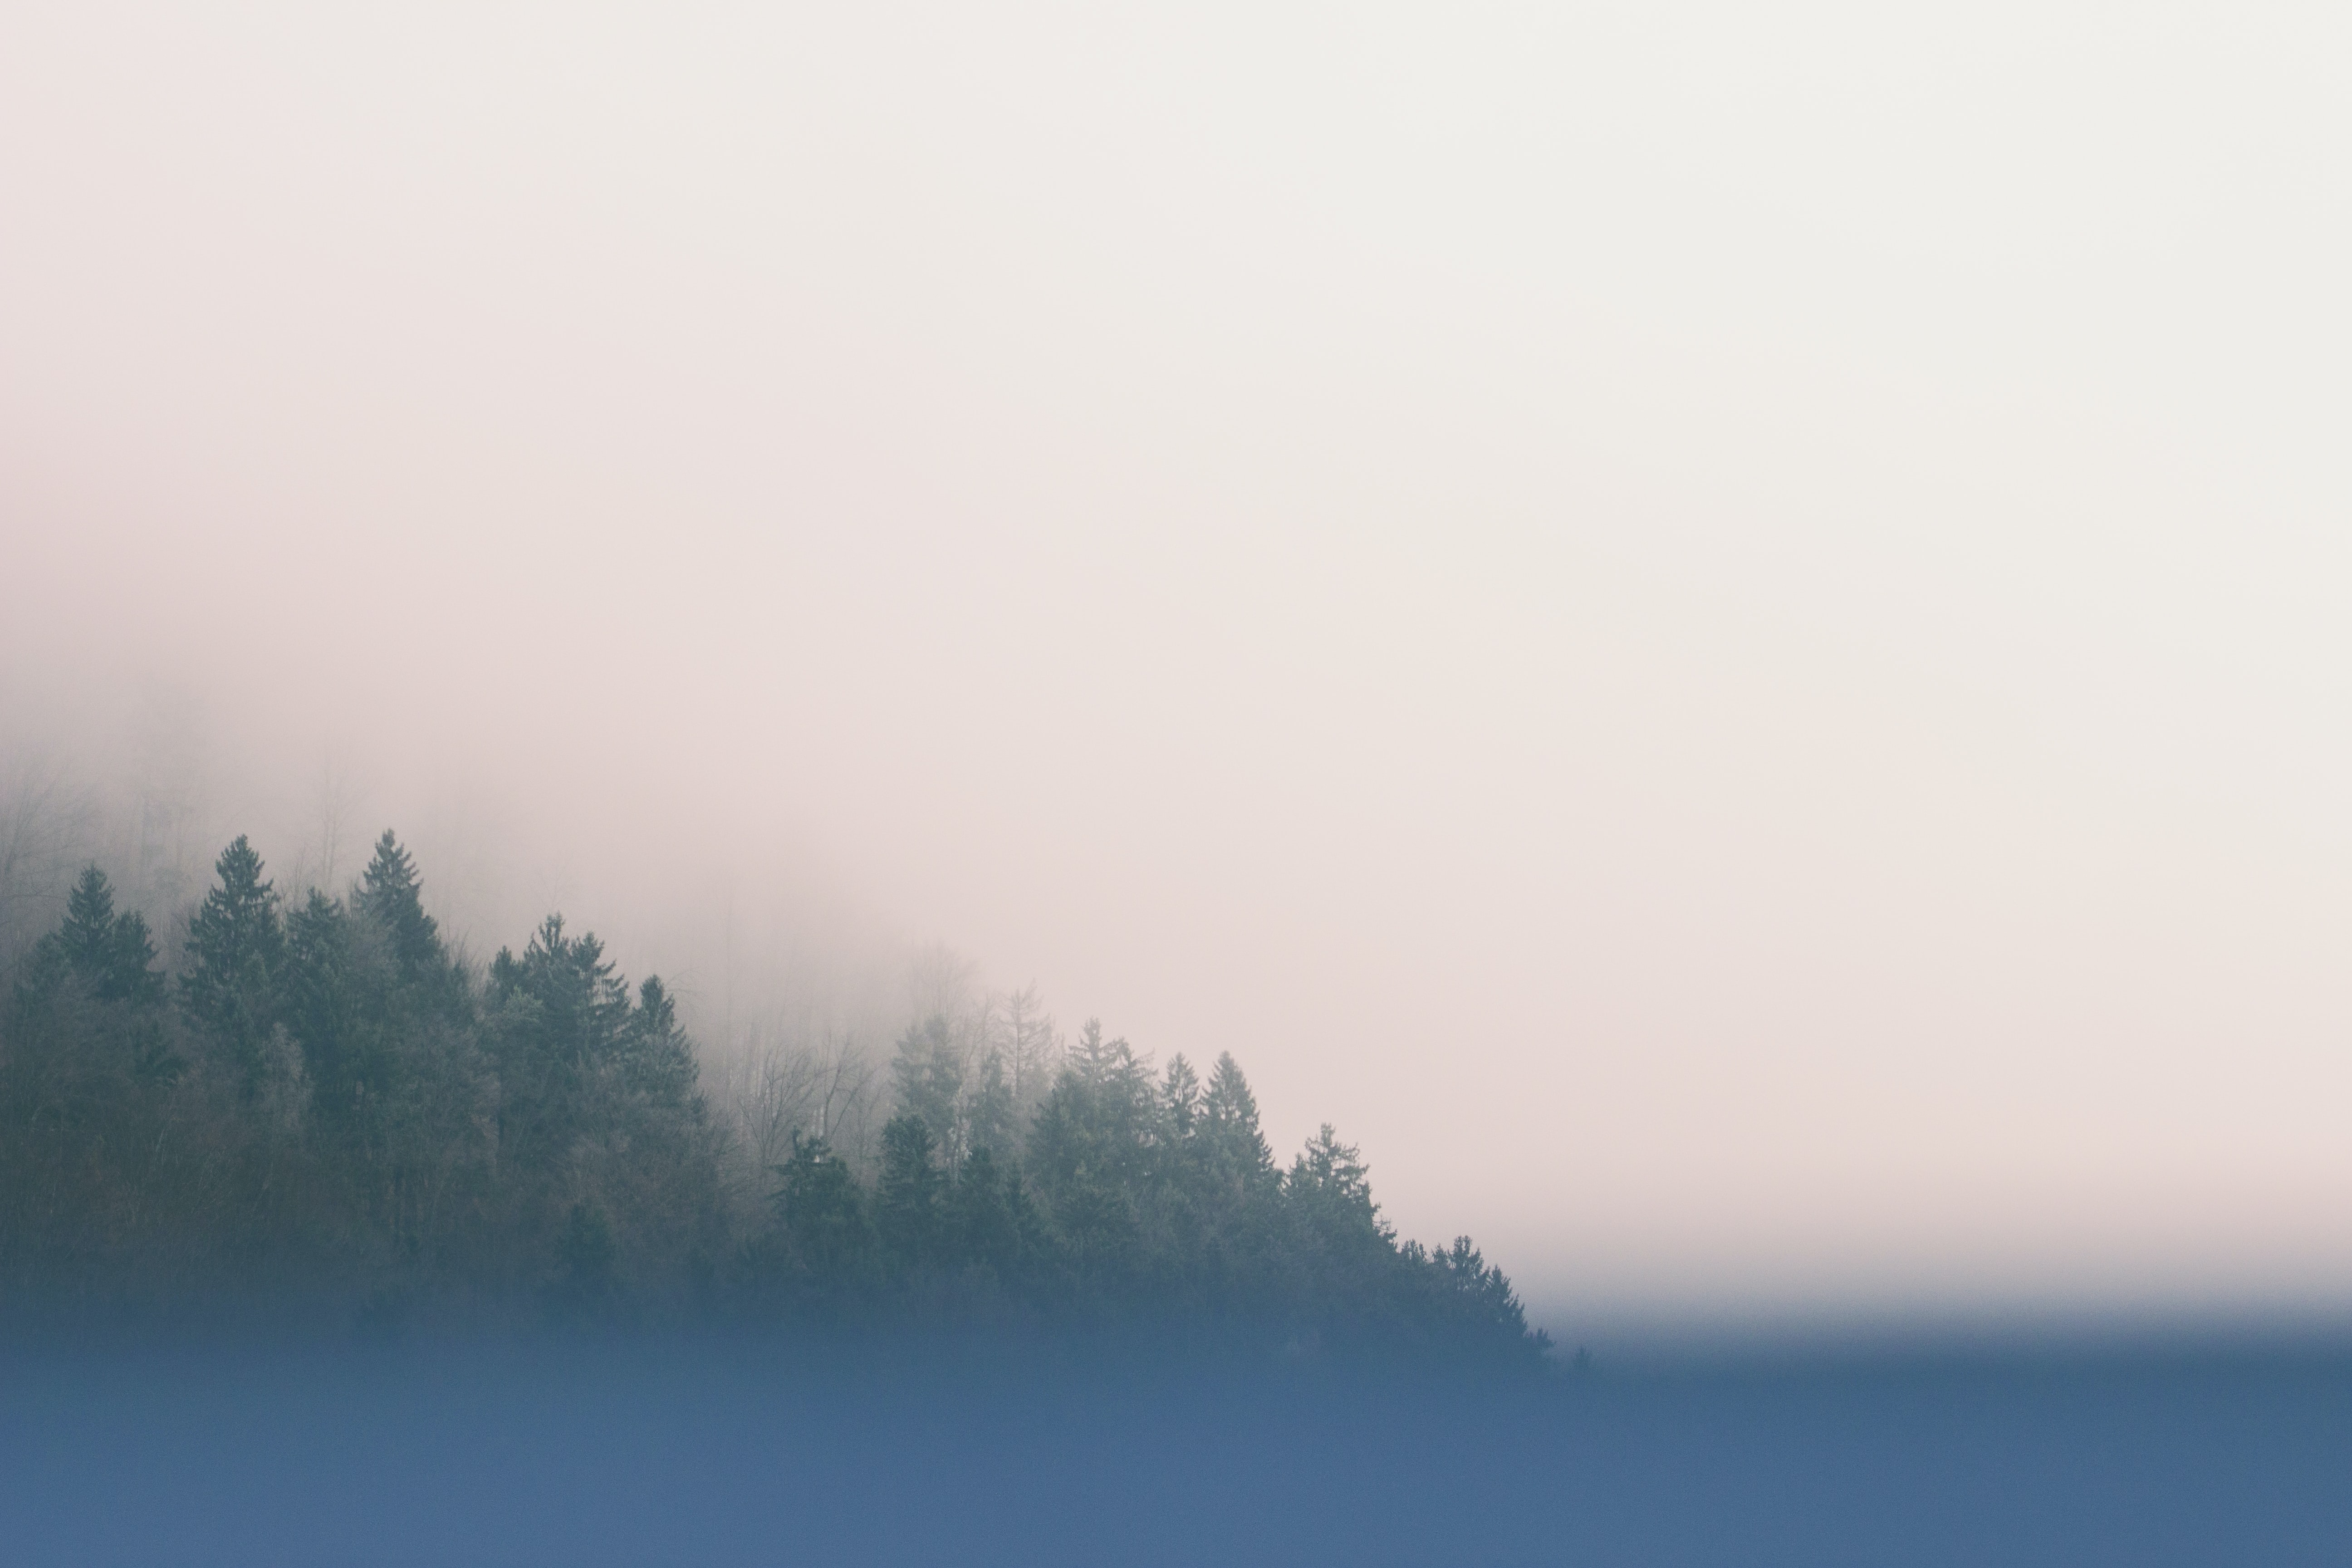 A hazy shot of a forest shrouded in a thick mist